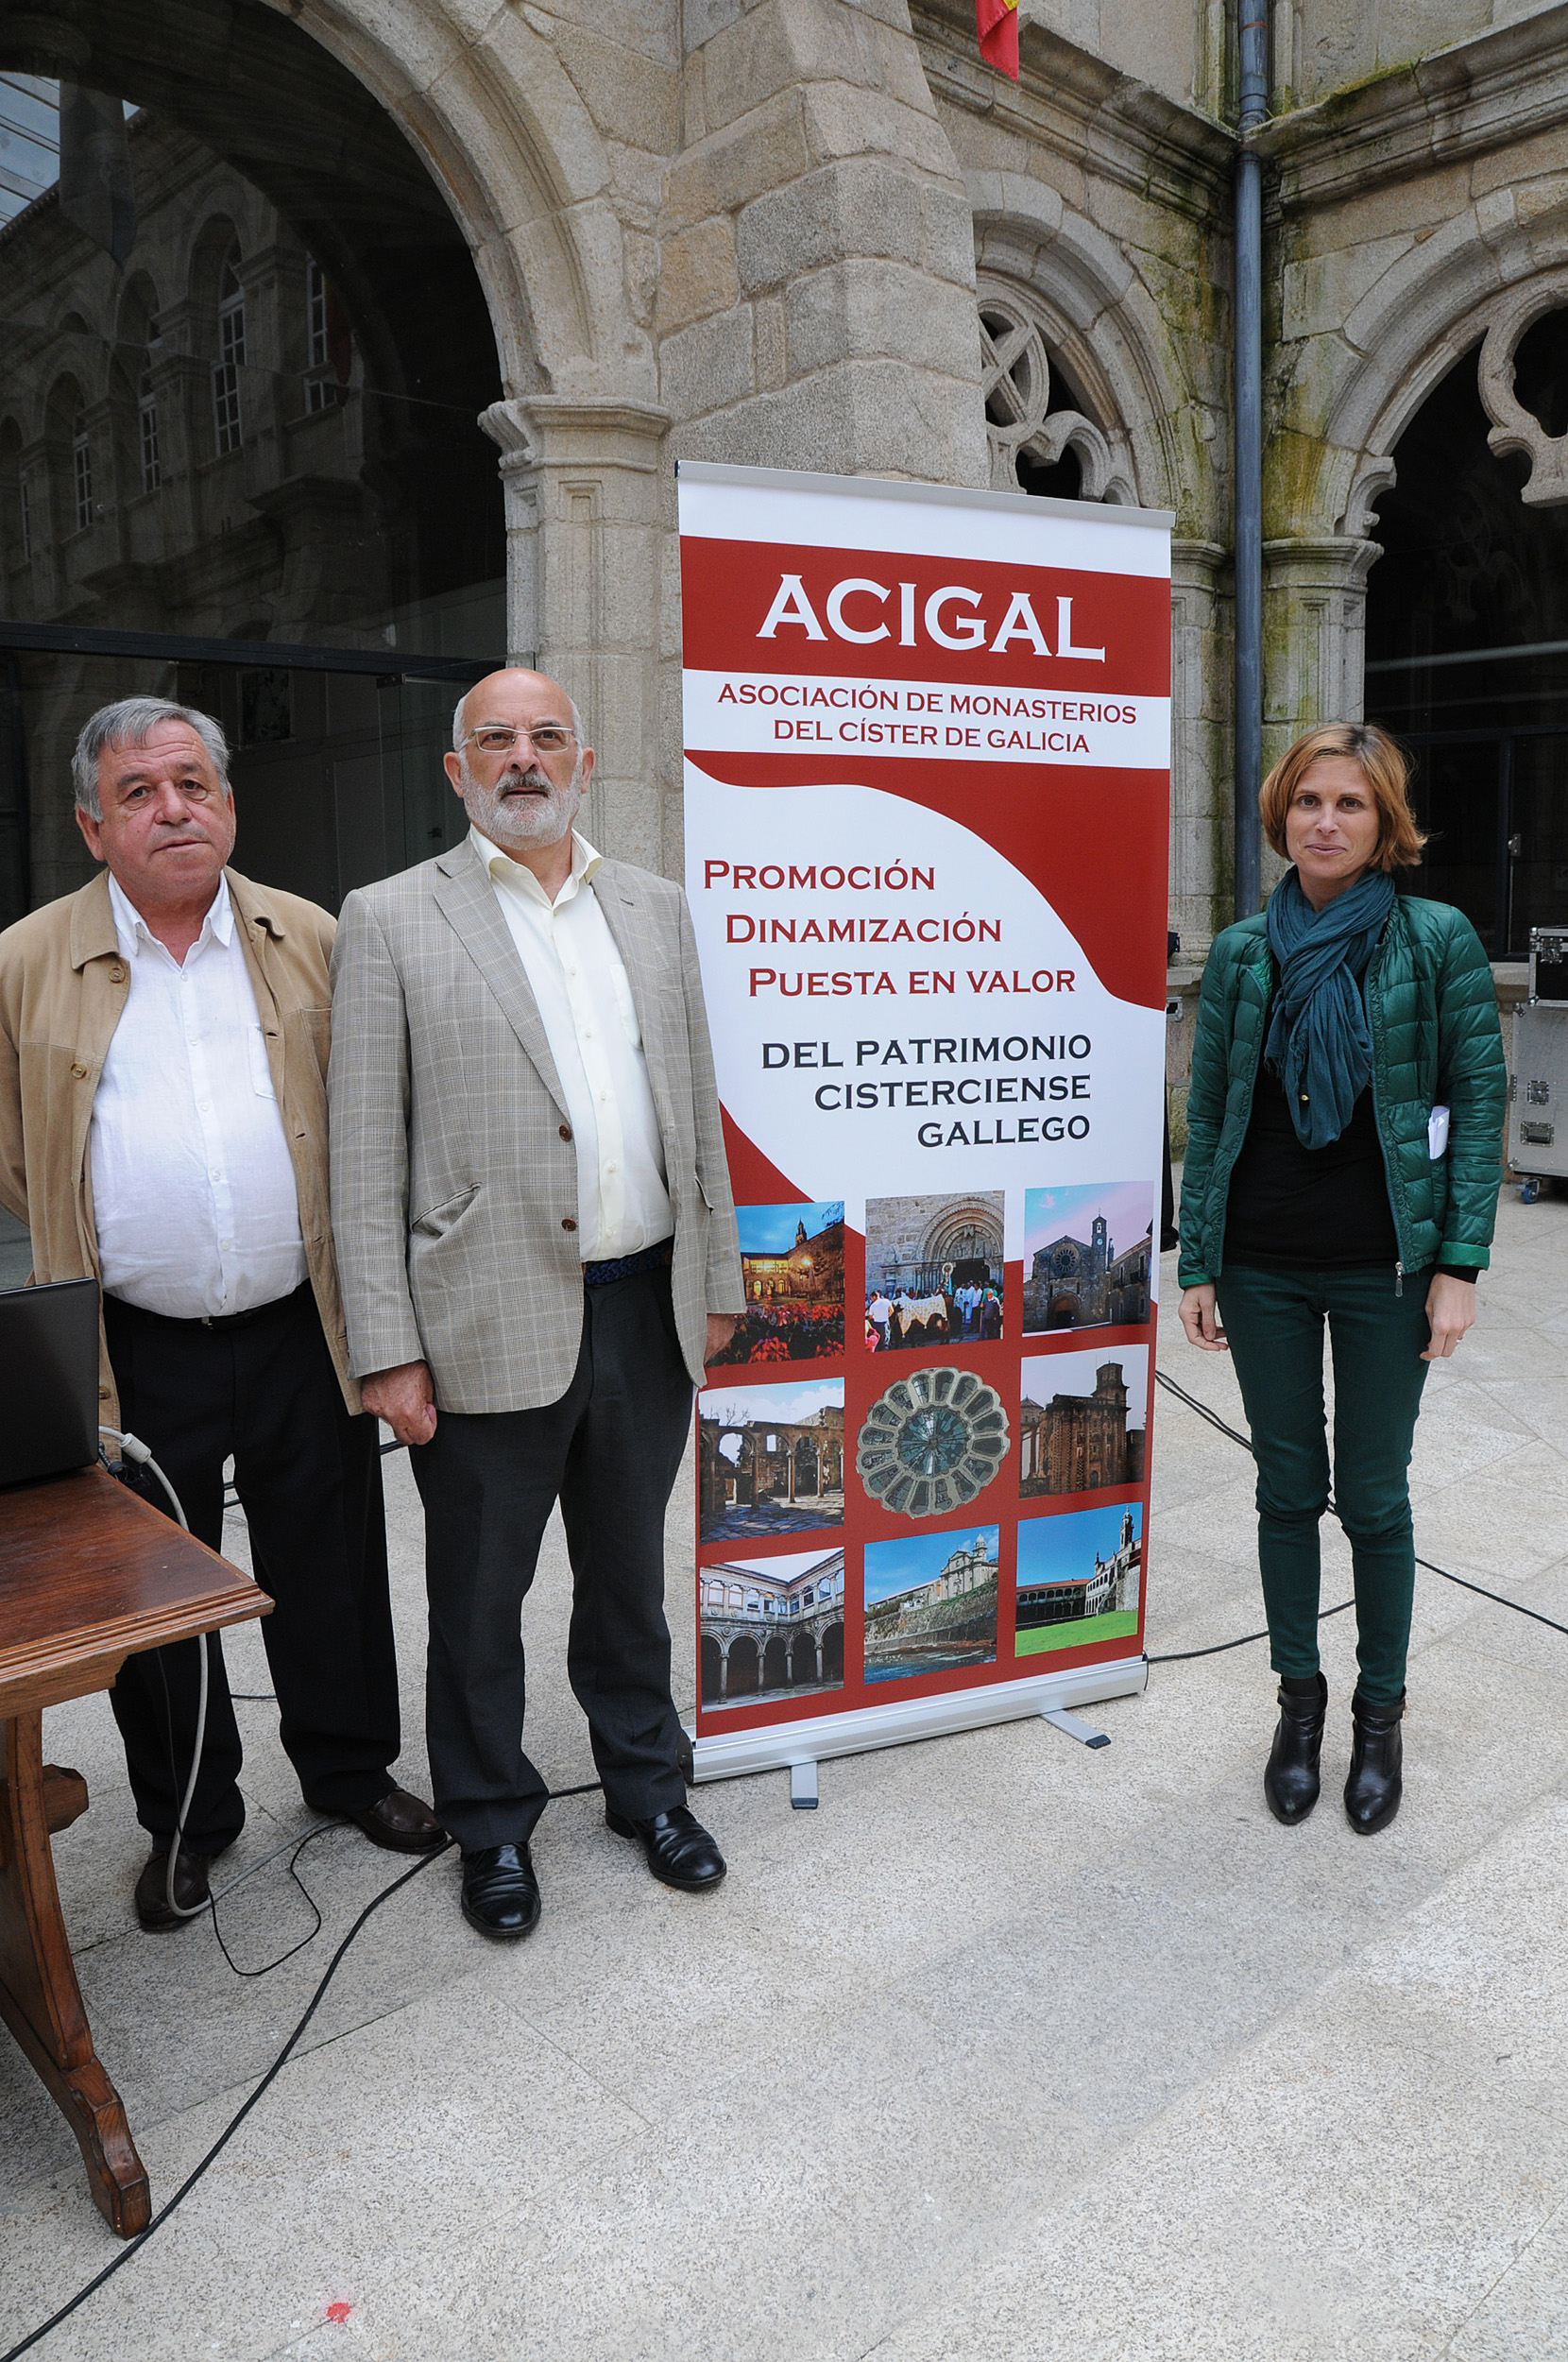 [:es]Los monasterios cistercienses gallegos trabajan para la construcción de su propio itinerario cultural europeoOs mosteiros cistercienses galegos traballan para a construción do seu propio itinerario cultural europeoCistercian monasteries Galicians work for building their own European cultural route